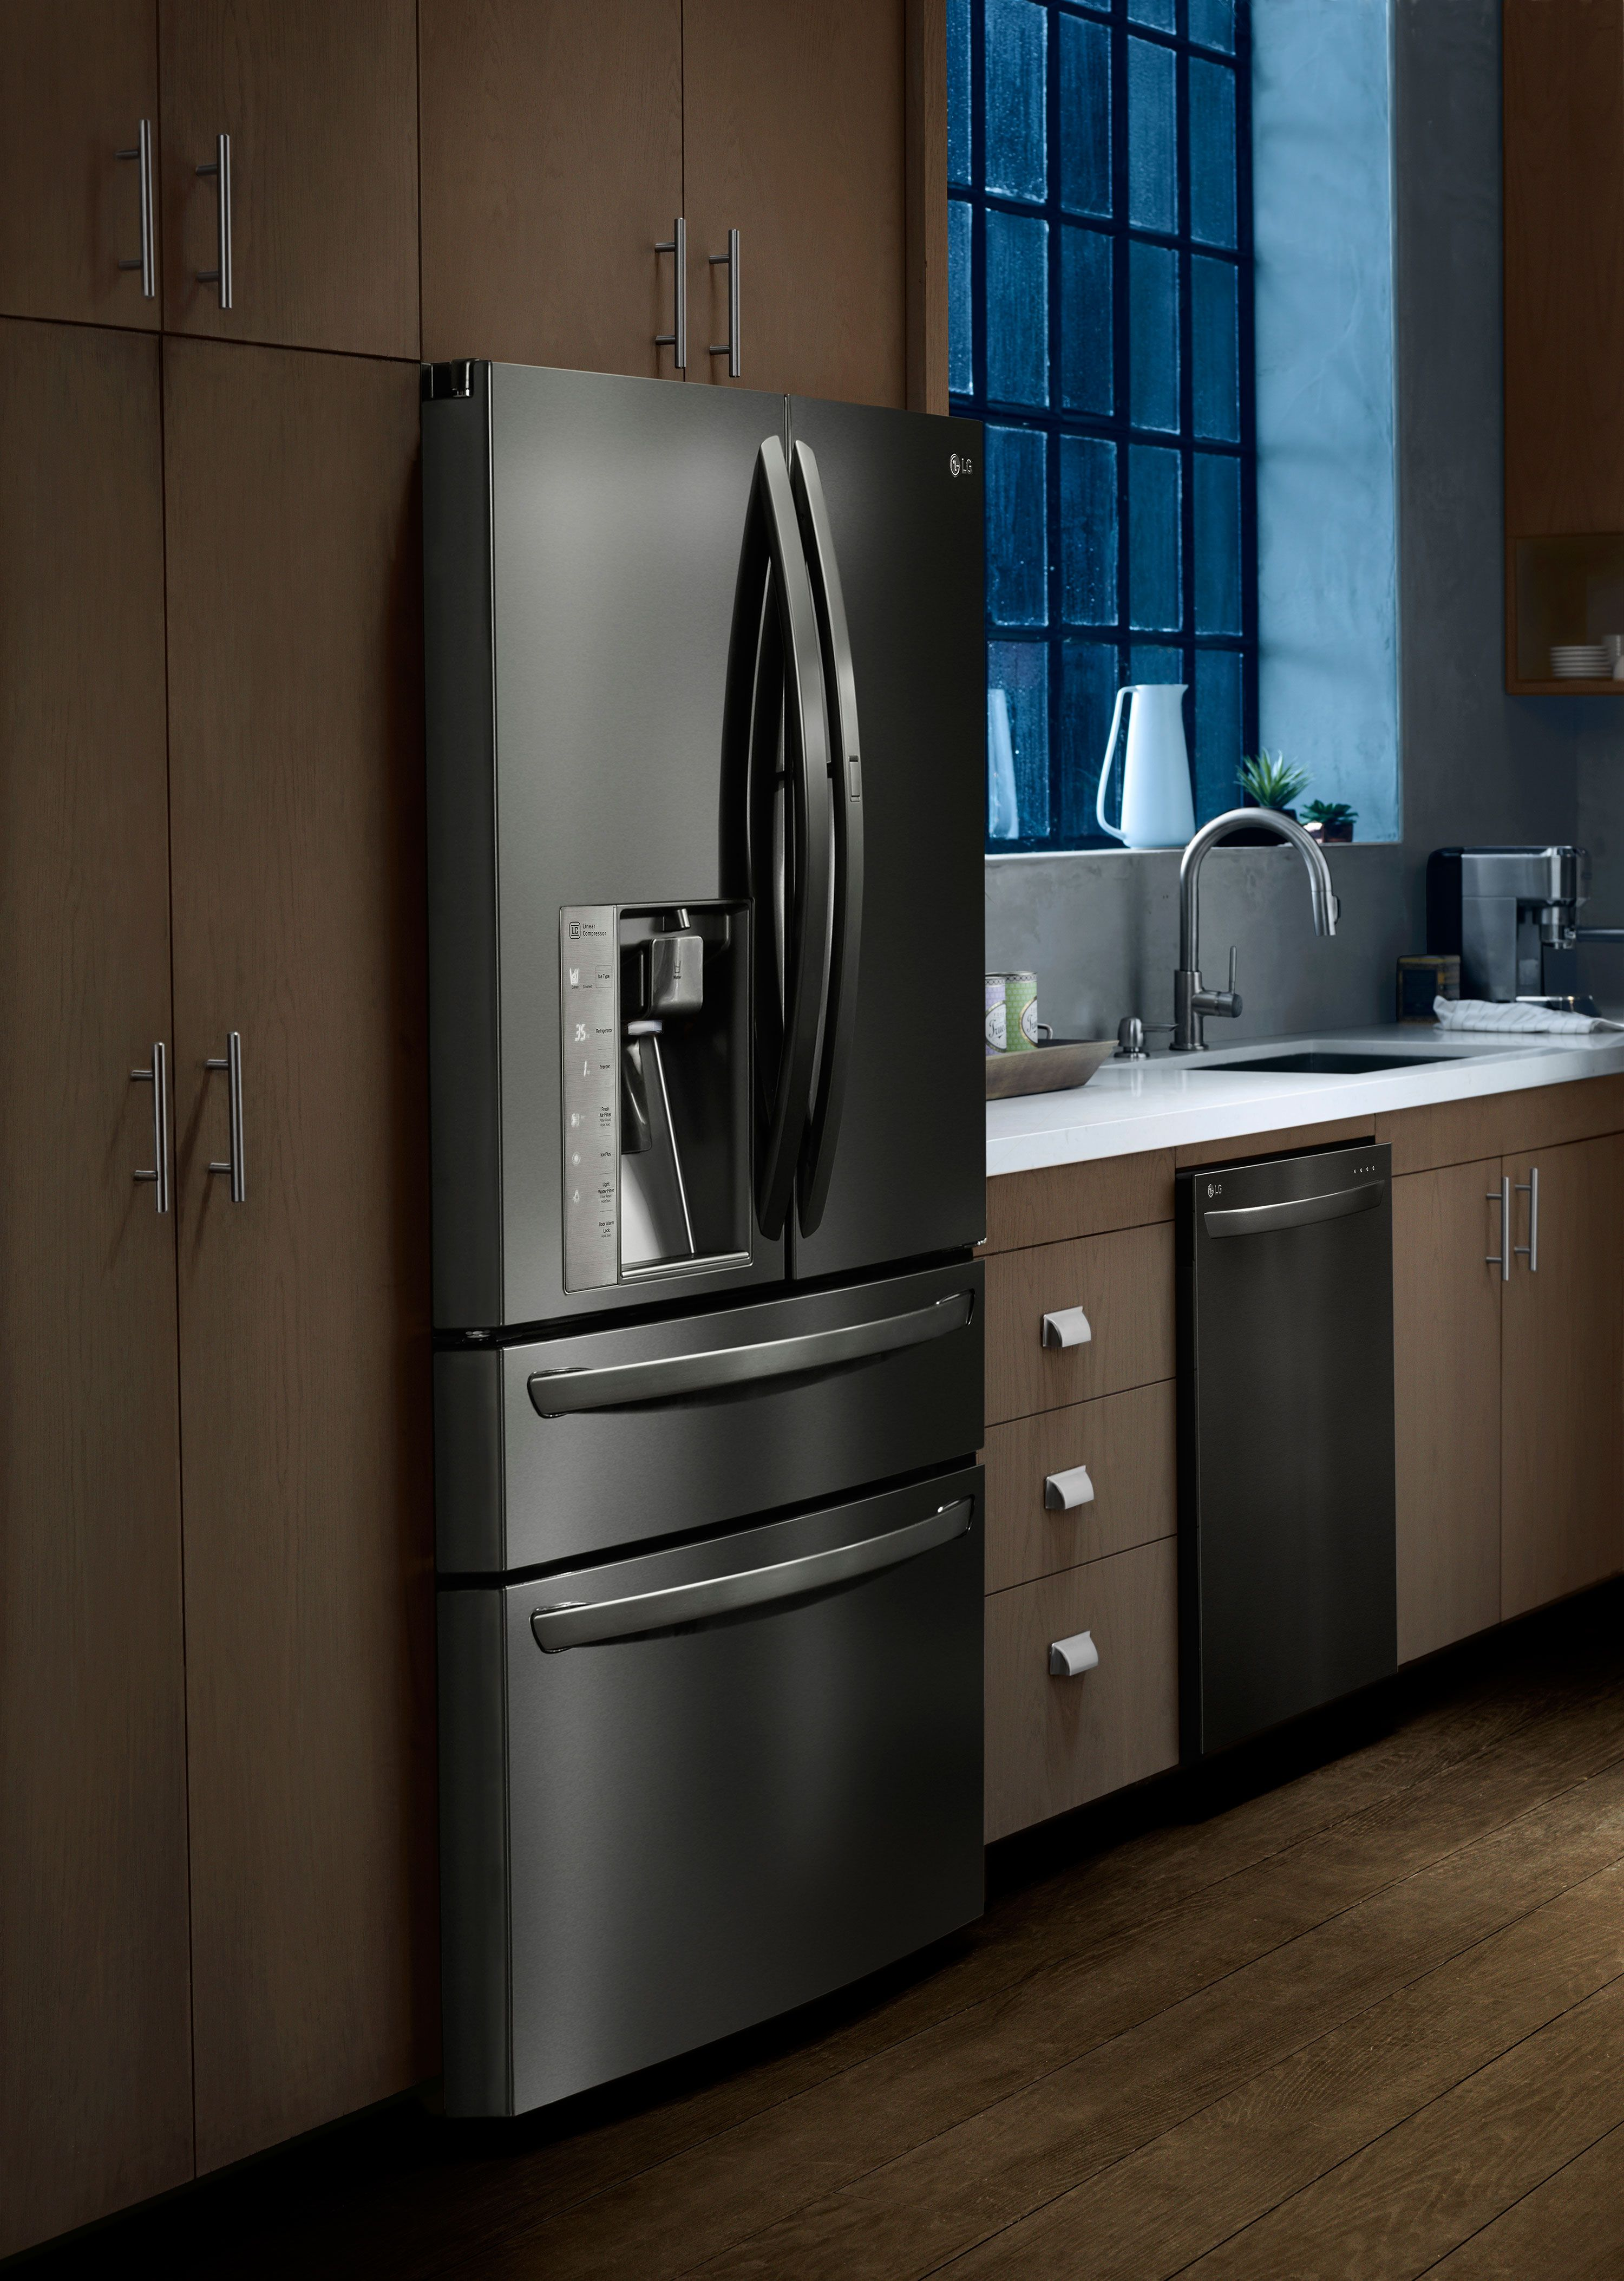 sweepstakes central black stainless steel hgtv and stainless steel